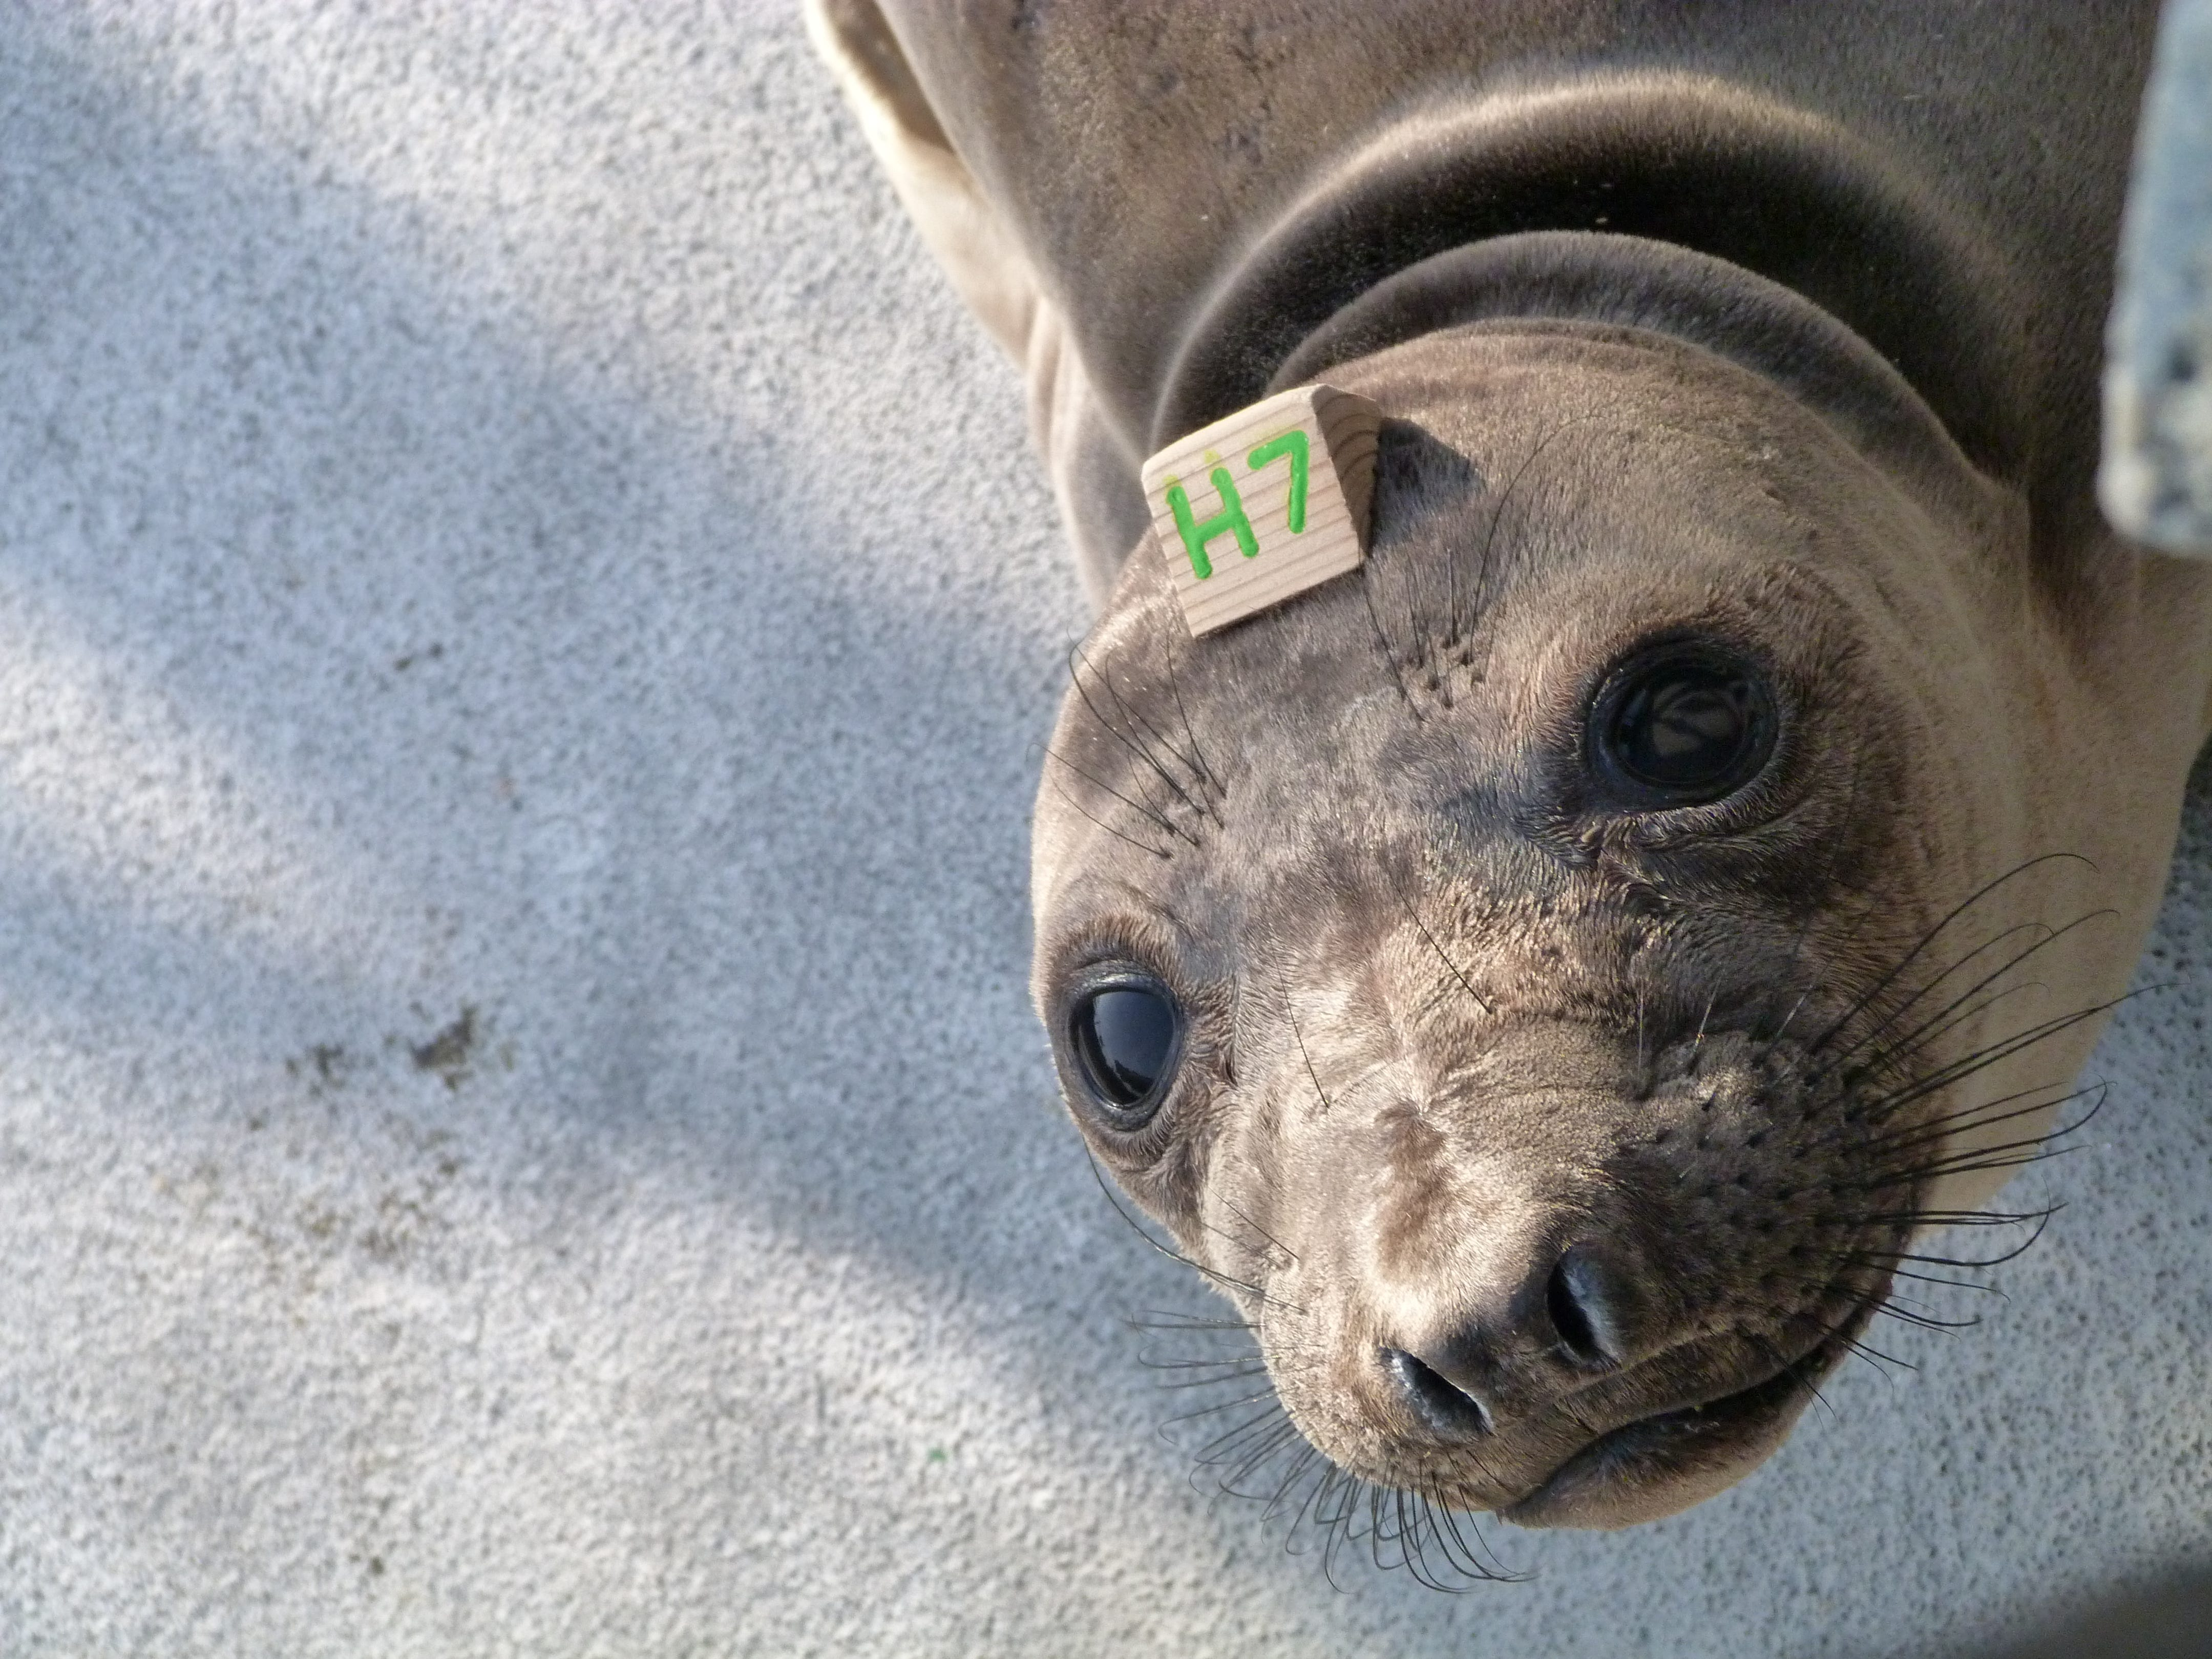 Arley the elephant seal looks up at the camera while in her pen at The Marine Mammal Center.